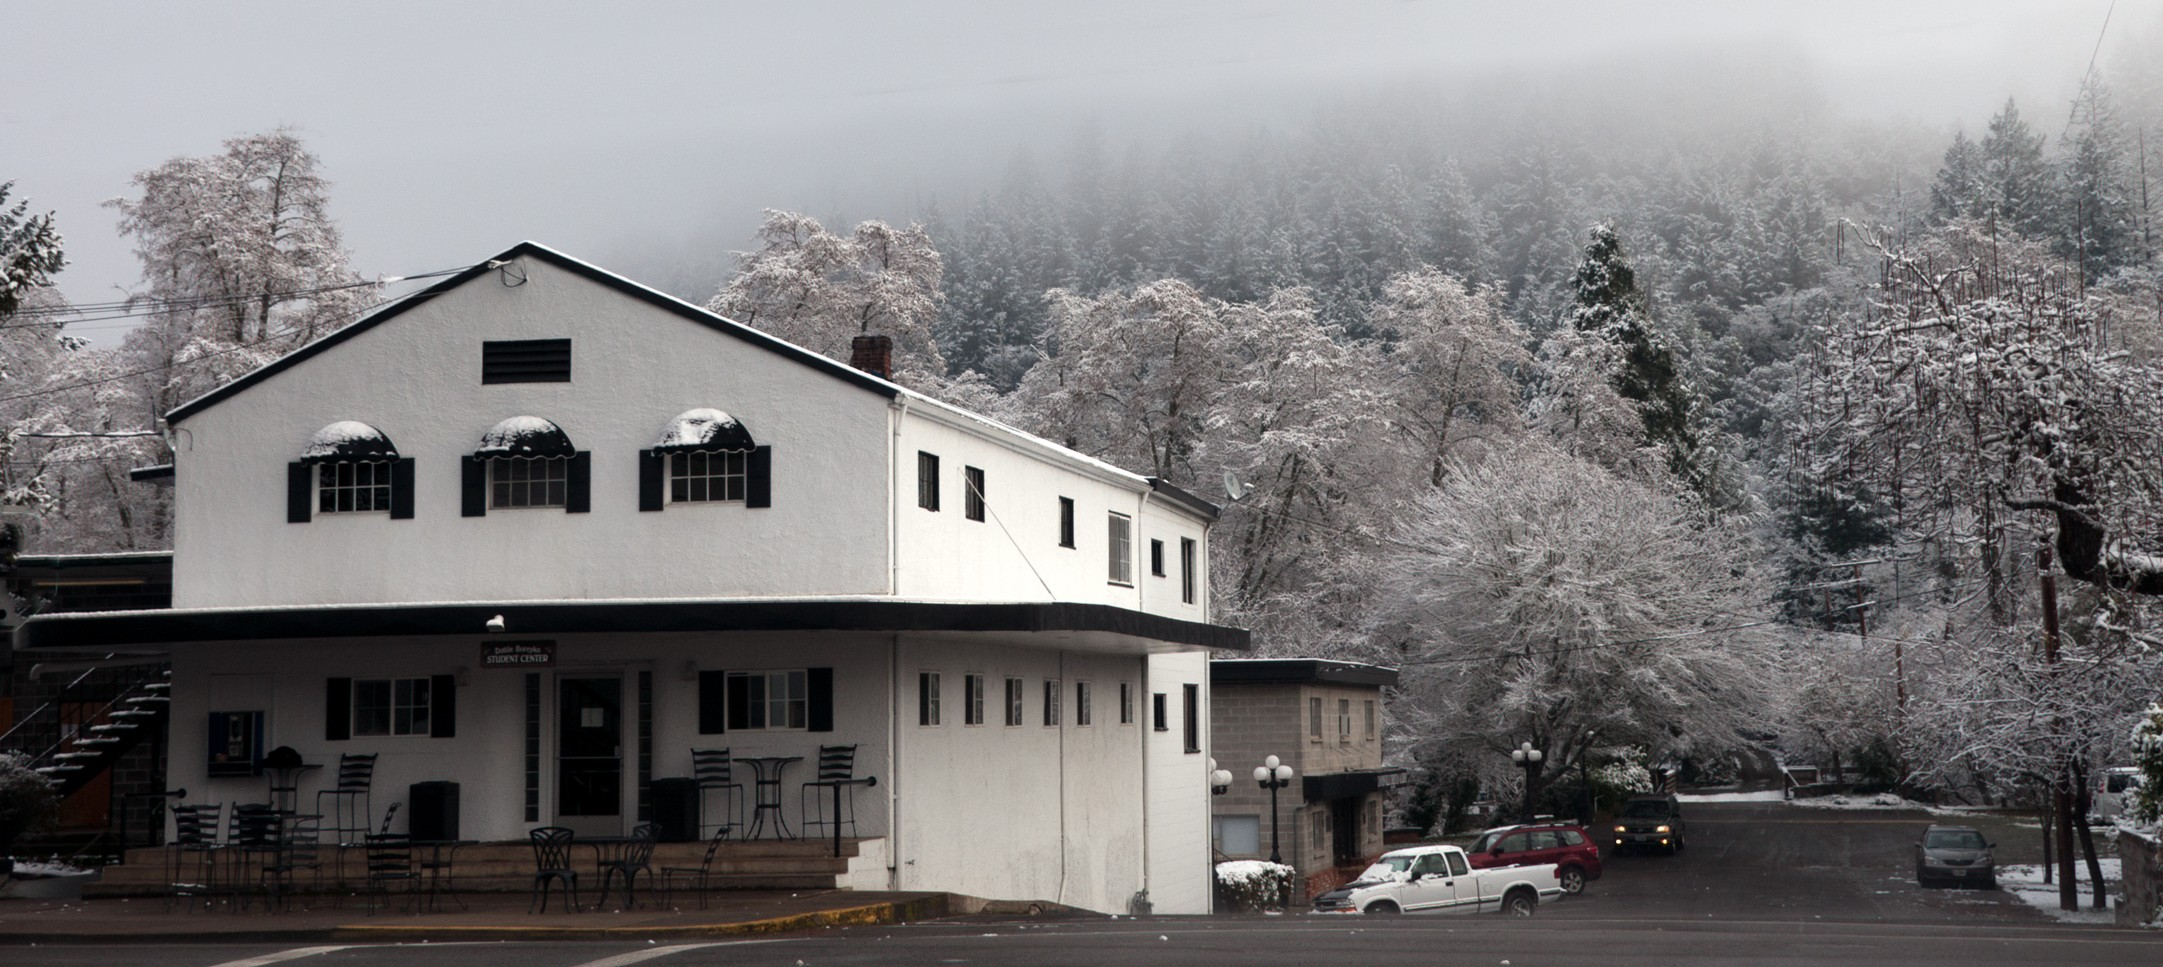 Student Center at Canyonville Christian Academy, in southern Oregon. Canyonville, has an International Boarding school